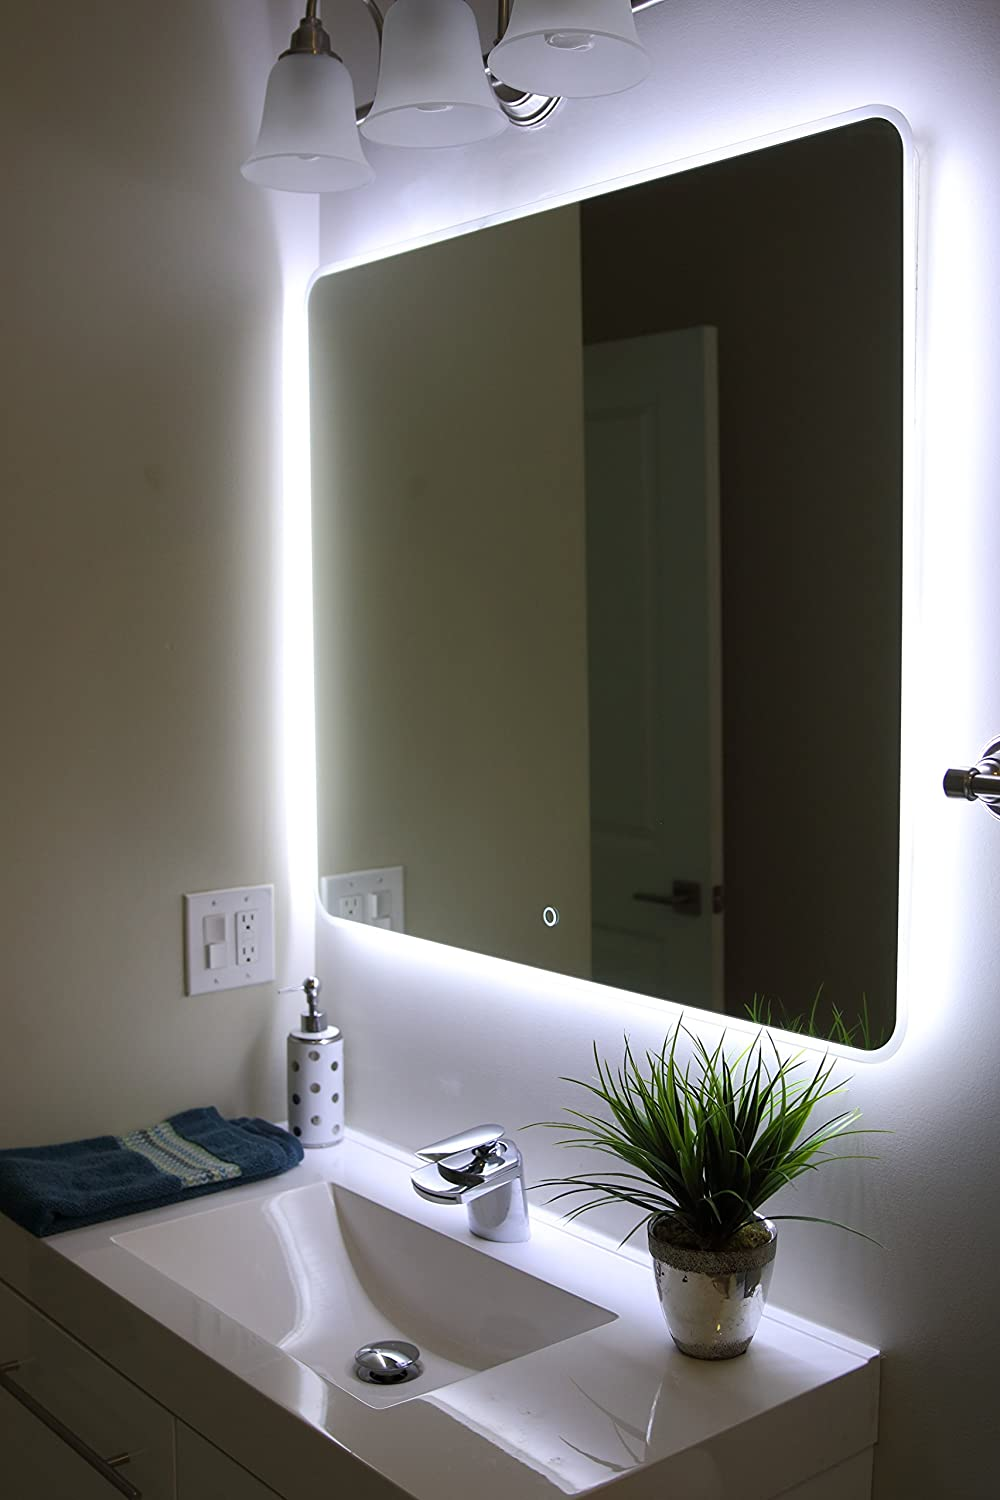 Amazon.com: Windbay Backlit Led Light Bathroom Vanity Sink Mirror.  Illuminated Mirror. (36